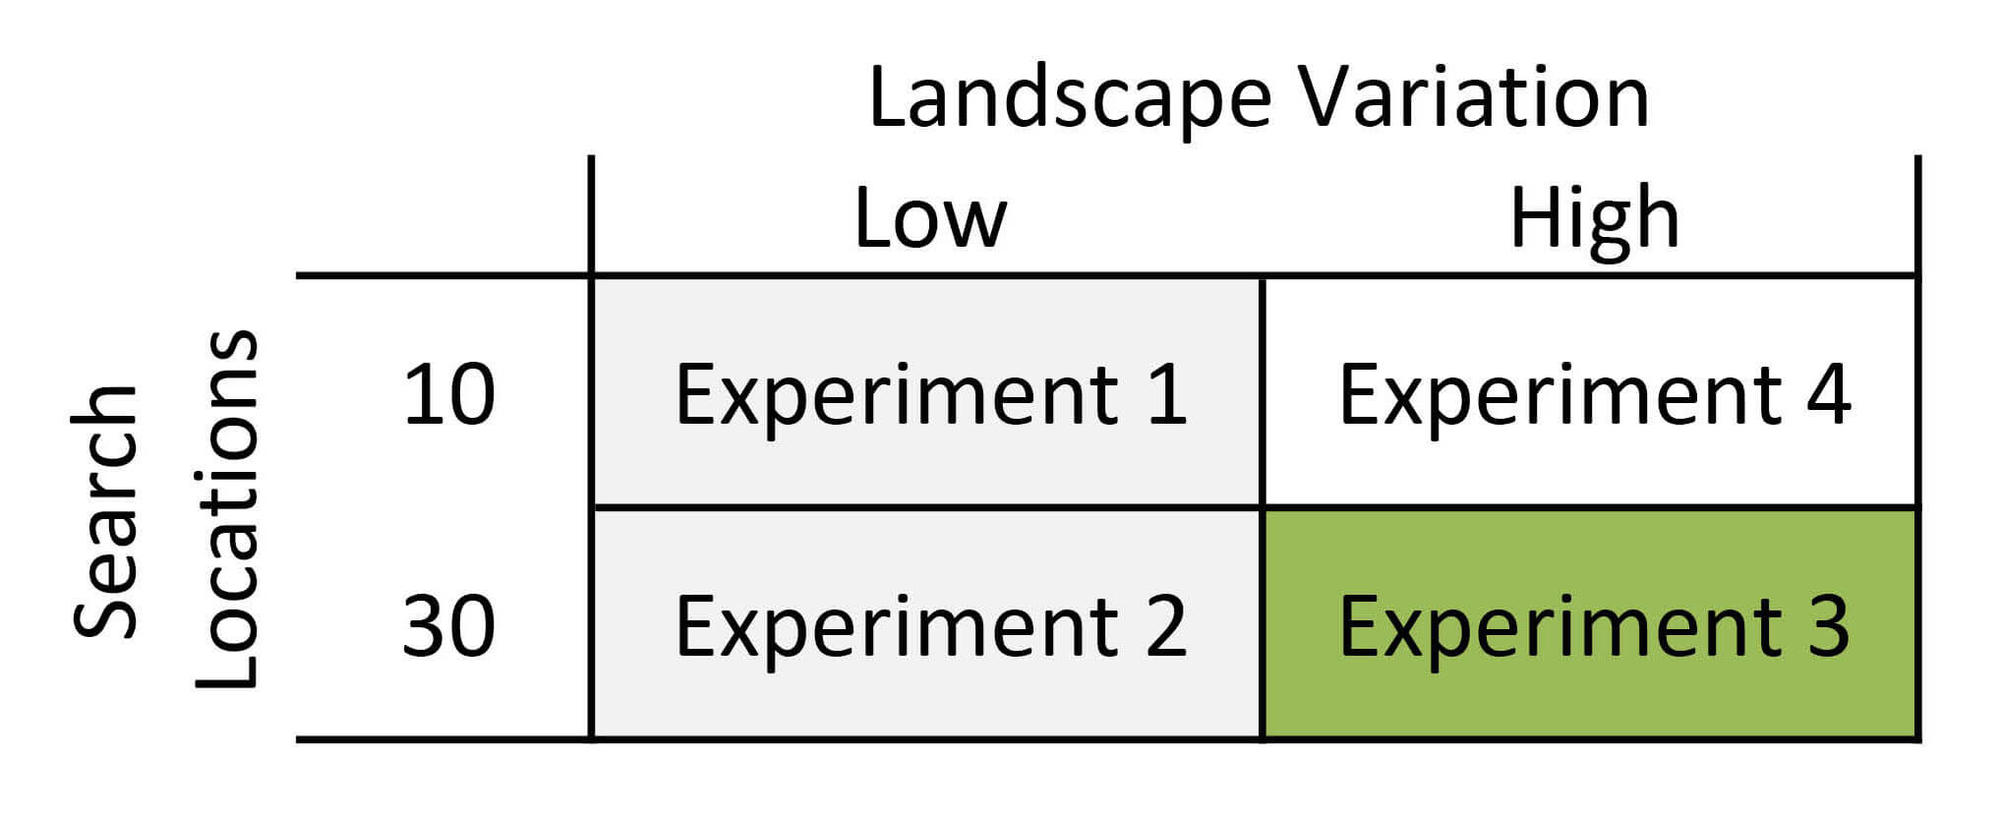 Landscape Variation High, Search Location 30, is where Experiment 3 is